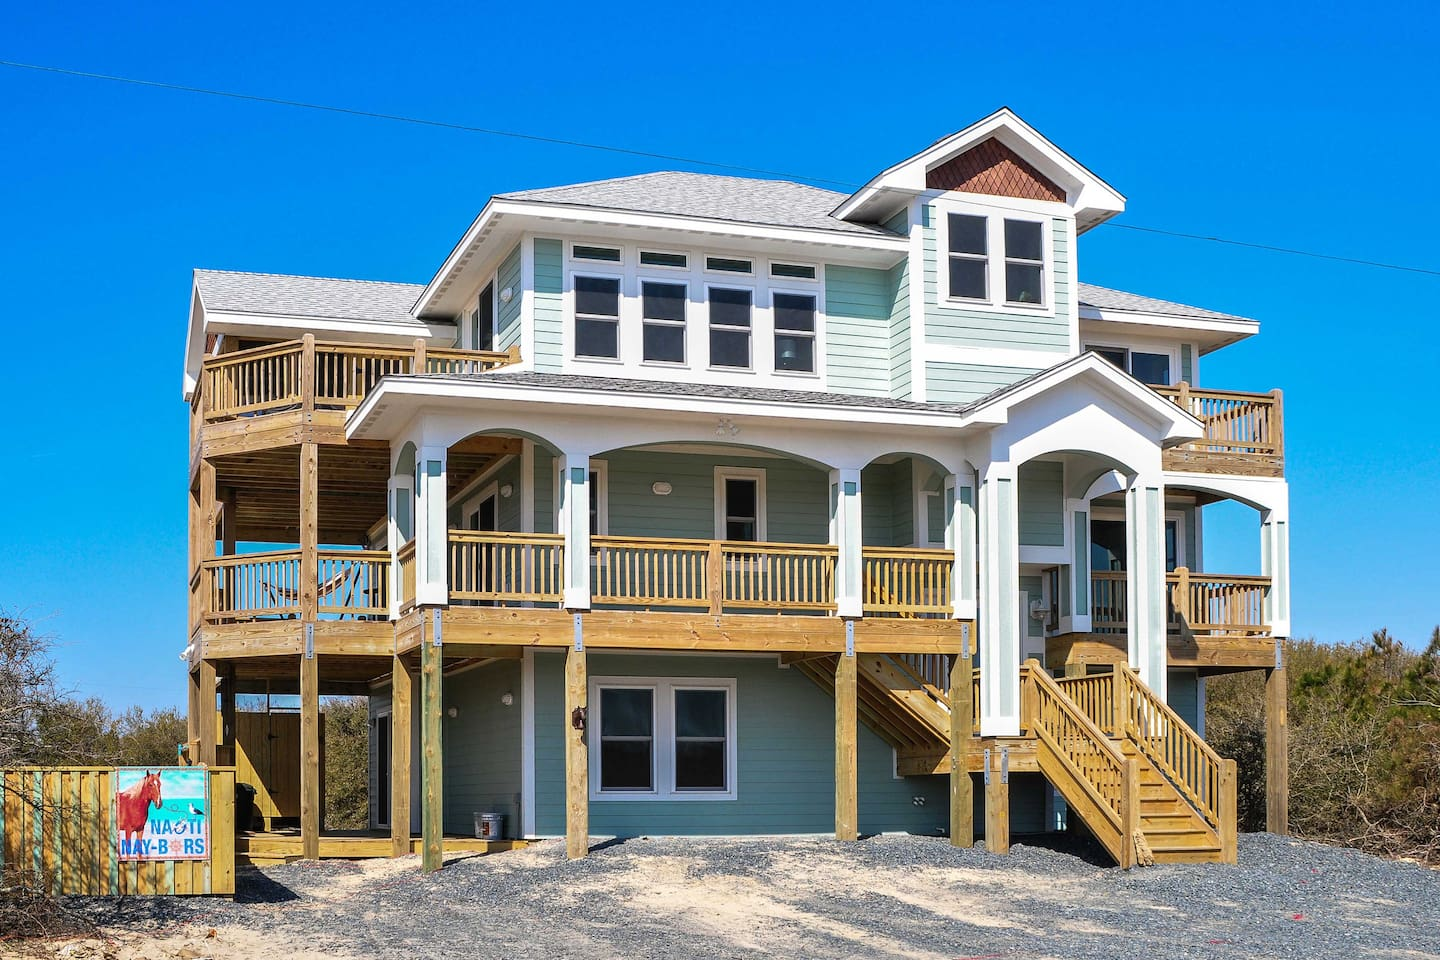 Elevate your Corolla trip at this vacation rental home!